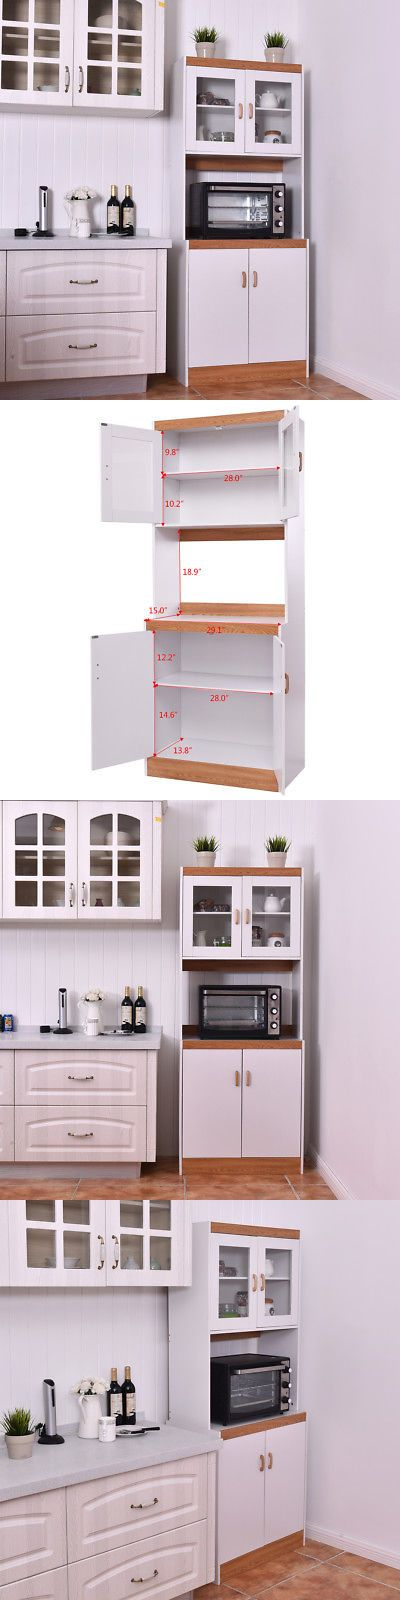 Bakers Racks 20482 Tall Microwave Cart Stand Kitchen Storage